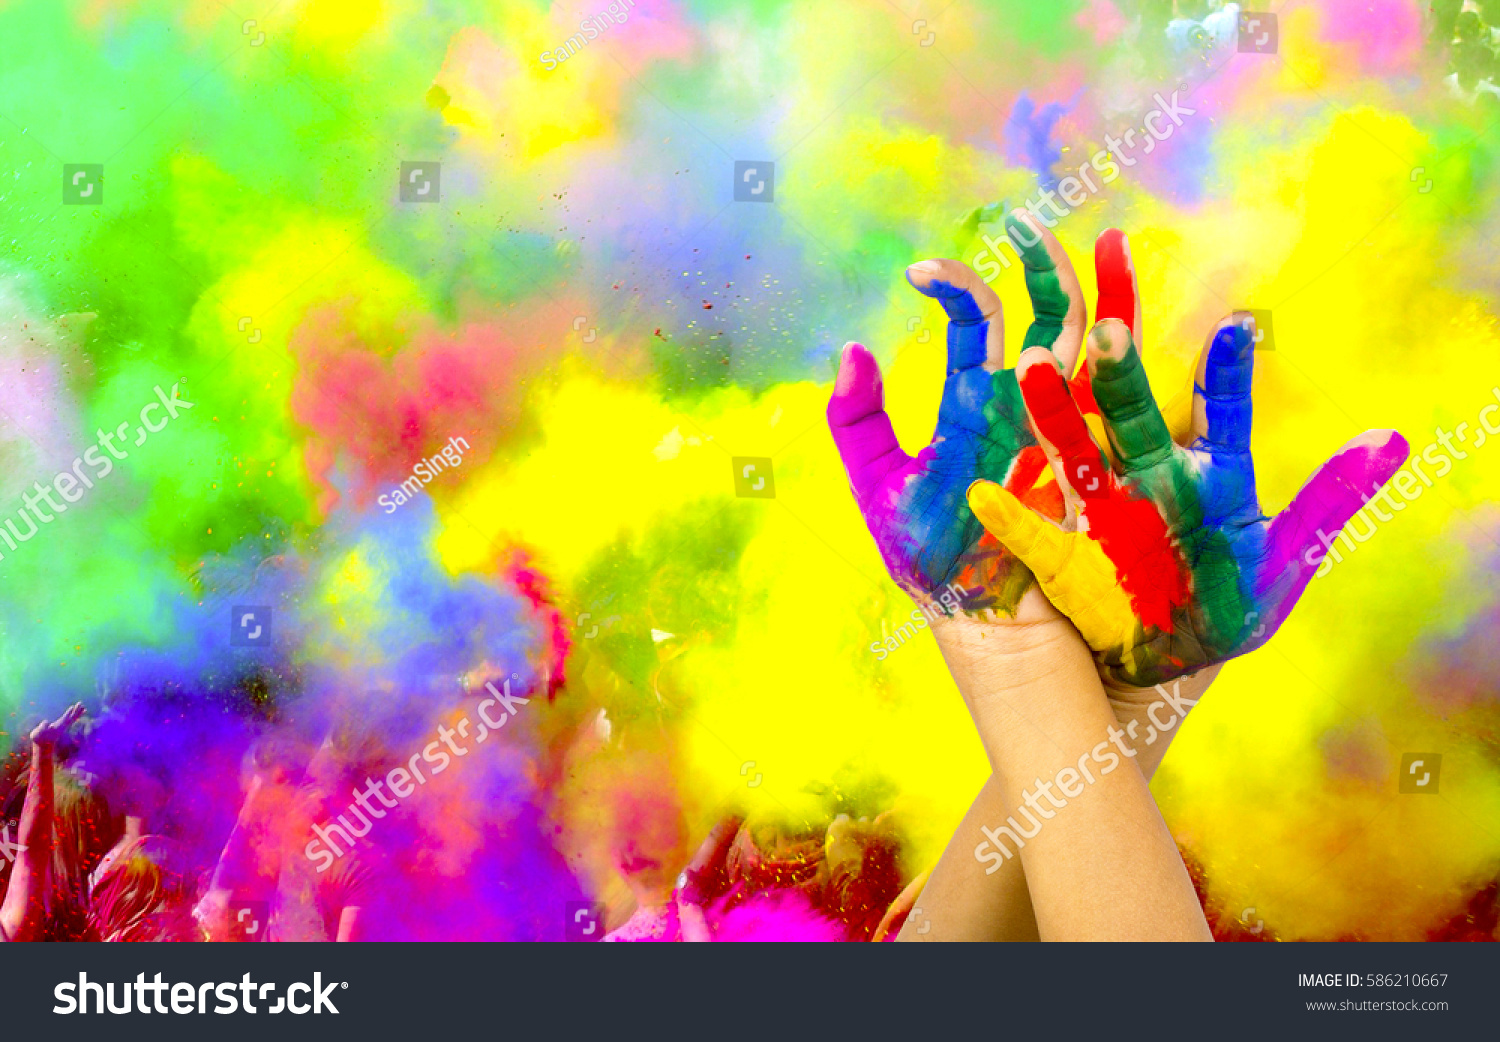 painted hands on colorful background の写真素材 今すぐ編集